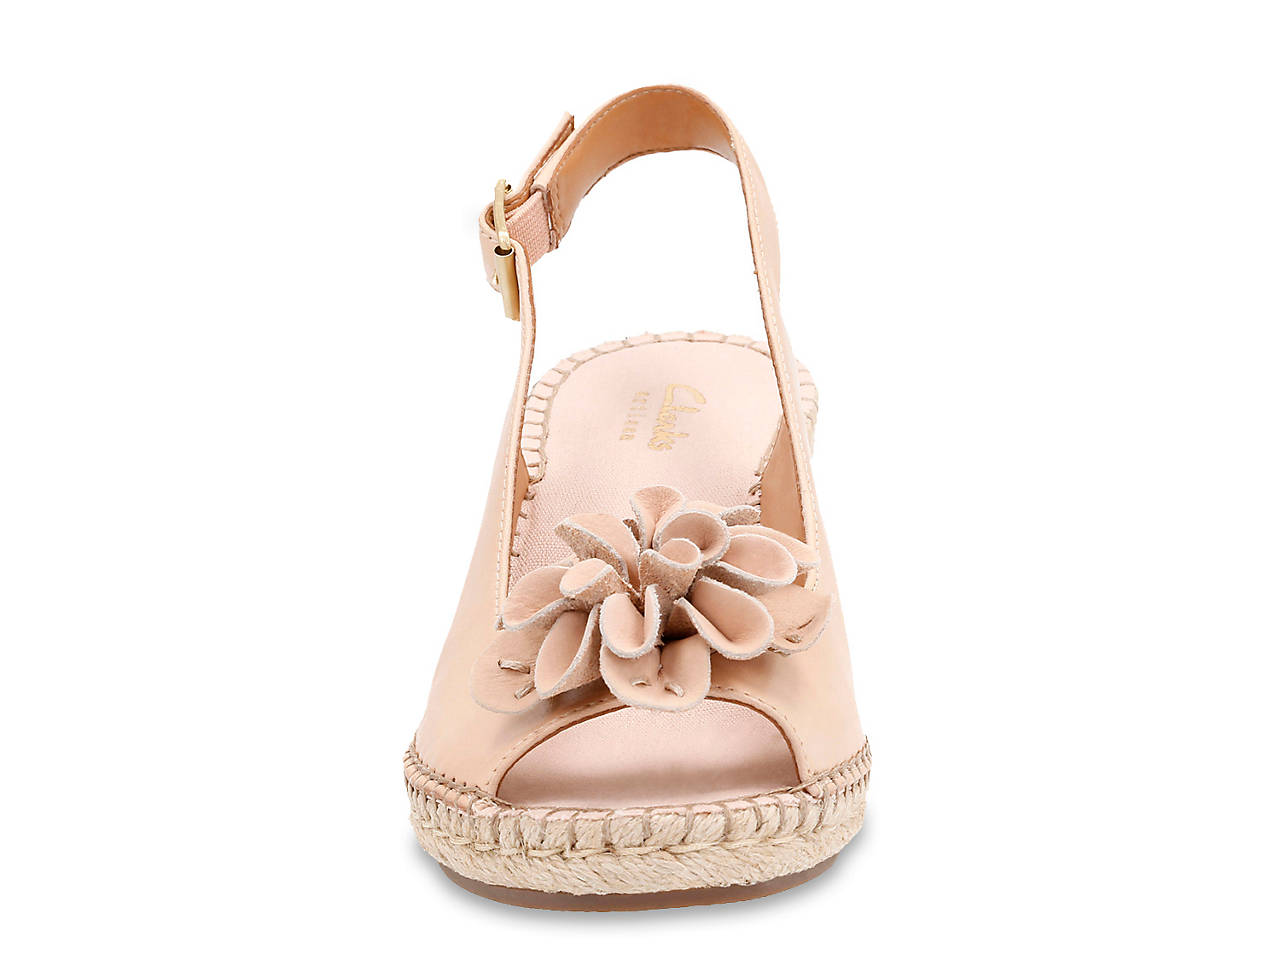 fafd5f3ad56a Clarks Petrina Bianca Wedge Sandal Women s Shoes